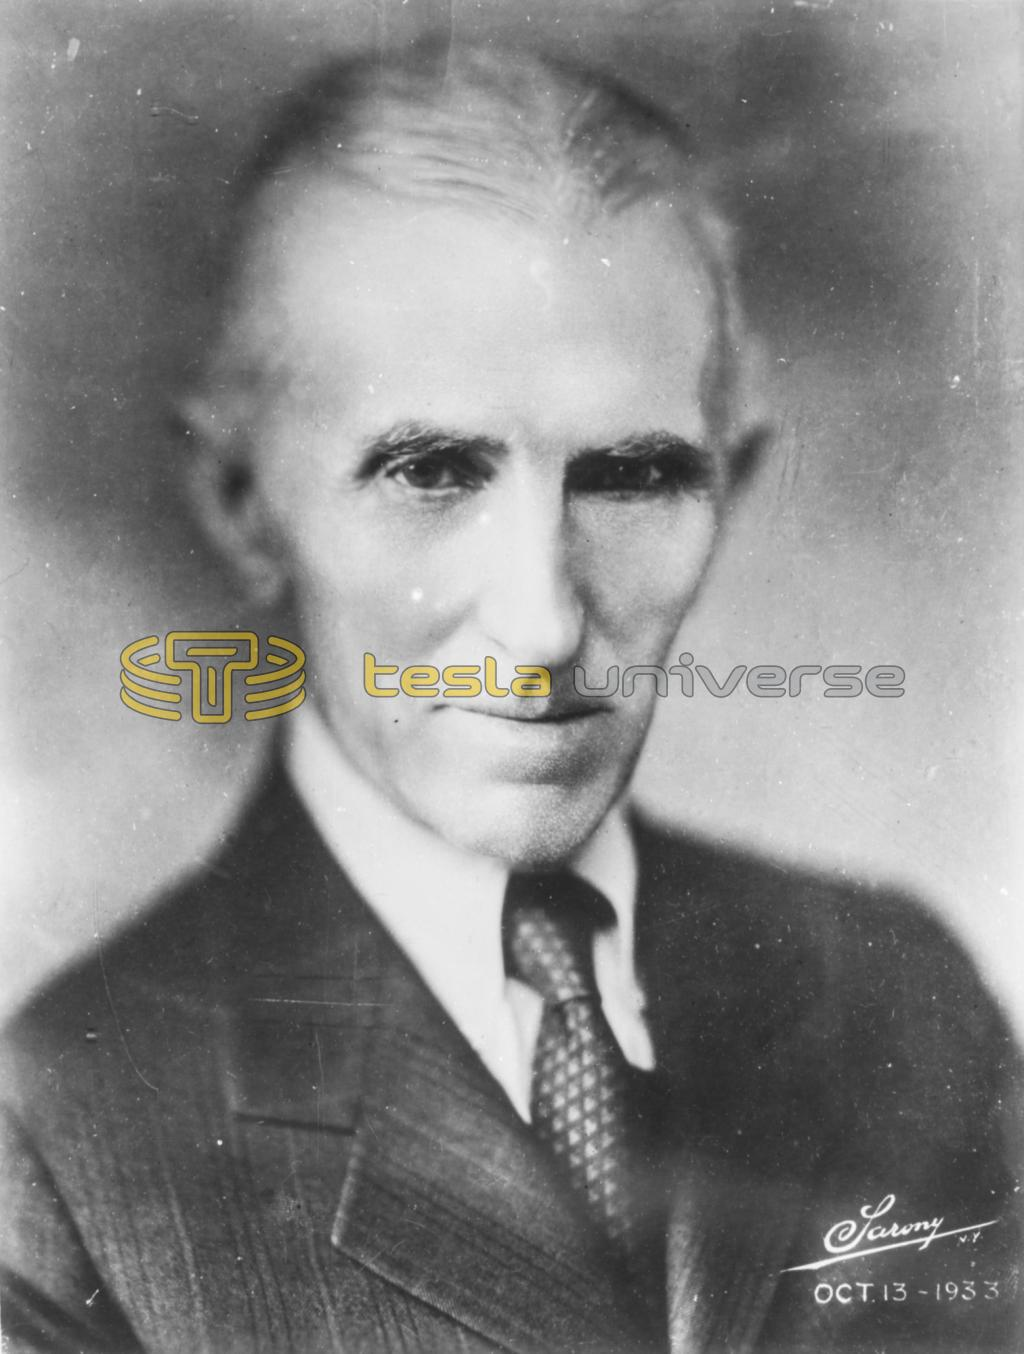 Sarony photograph of Nikola Tesla taken October 13, 1933